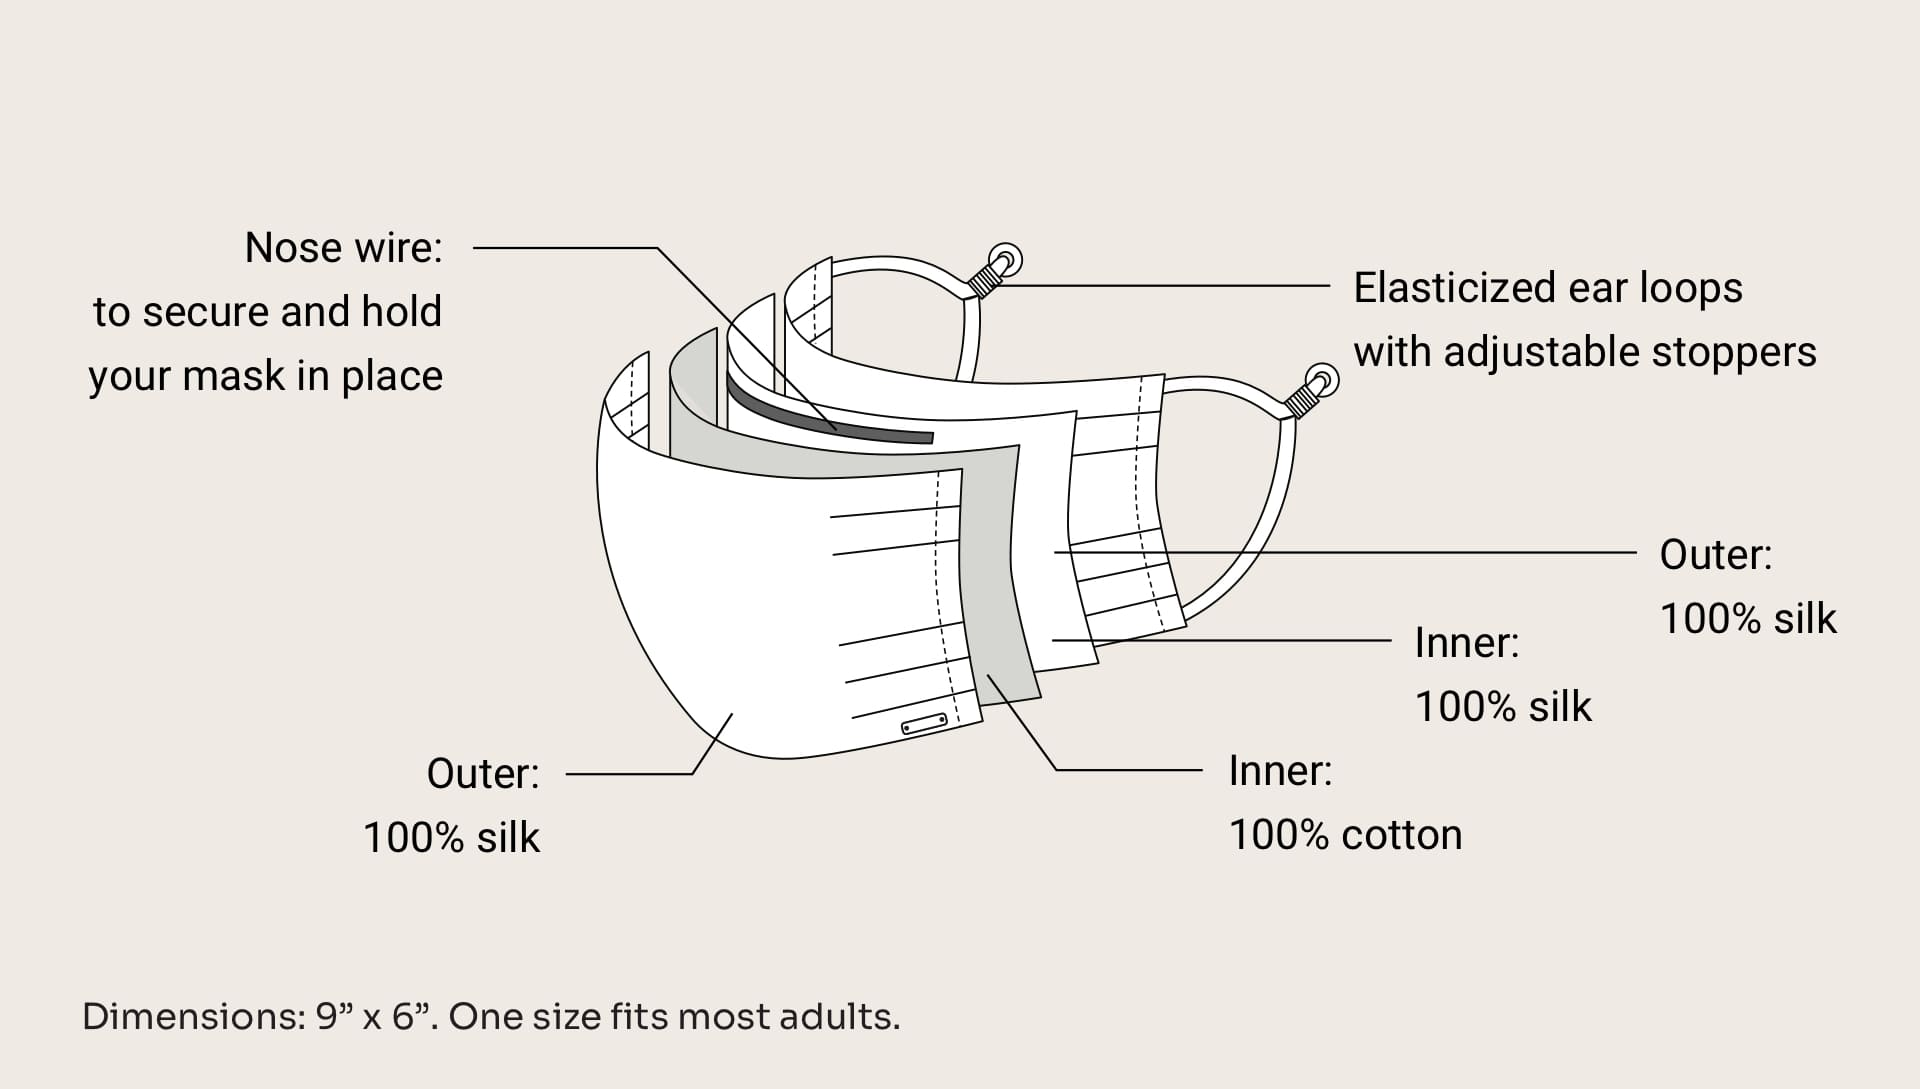 A diagram explaining how NK IMODE's silk face masks work, with a nose wire to hold your mask in place, adjustable elasticized ear loops, and multiple layers of silk and cotton.